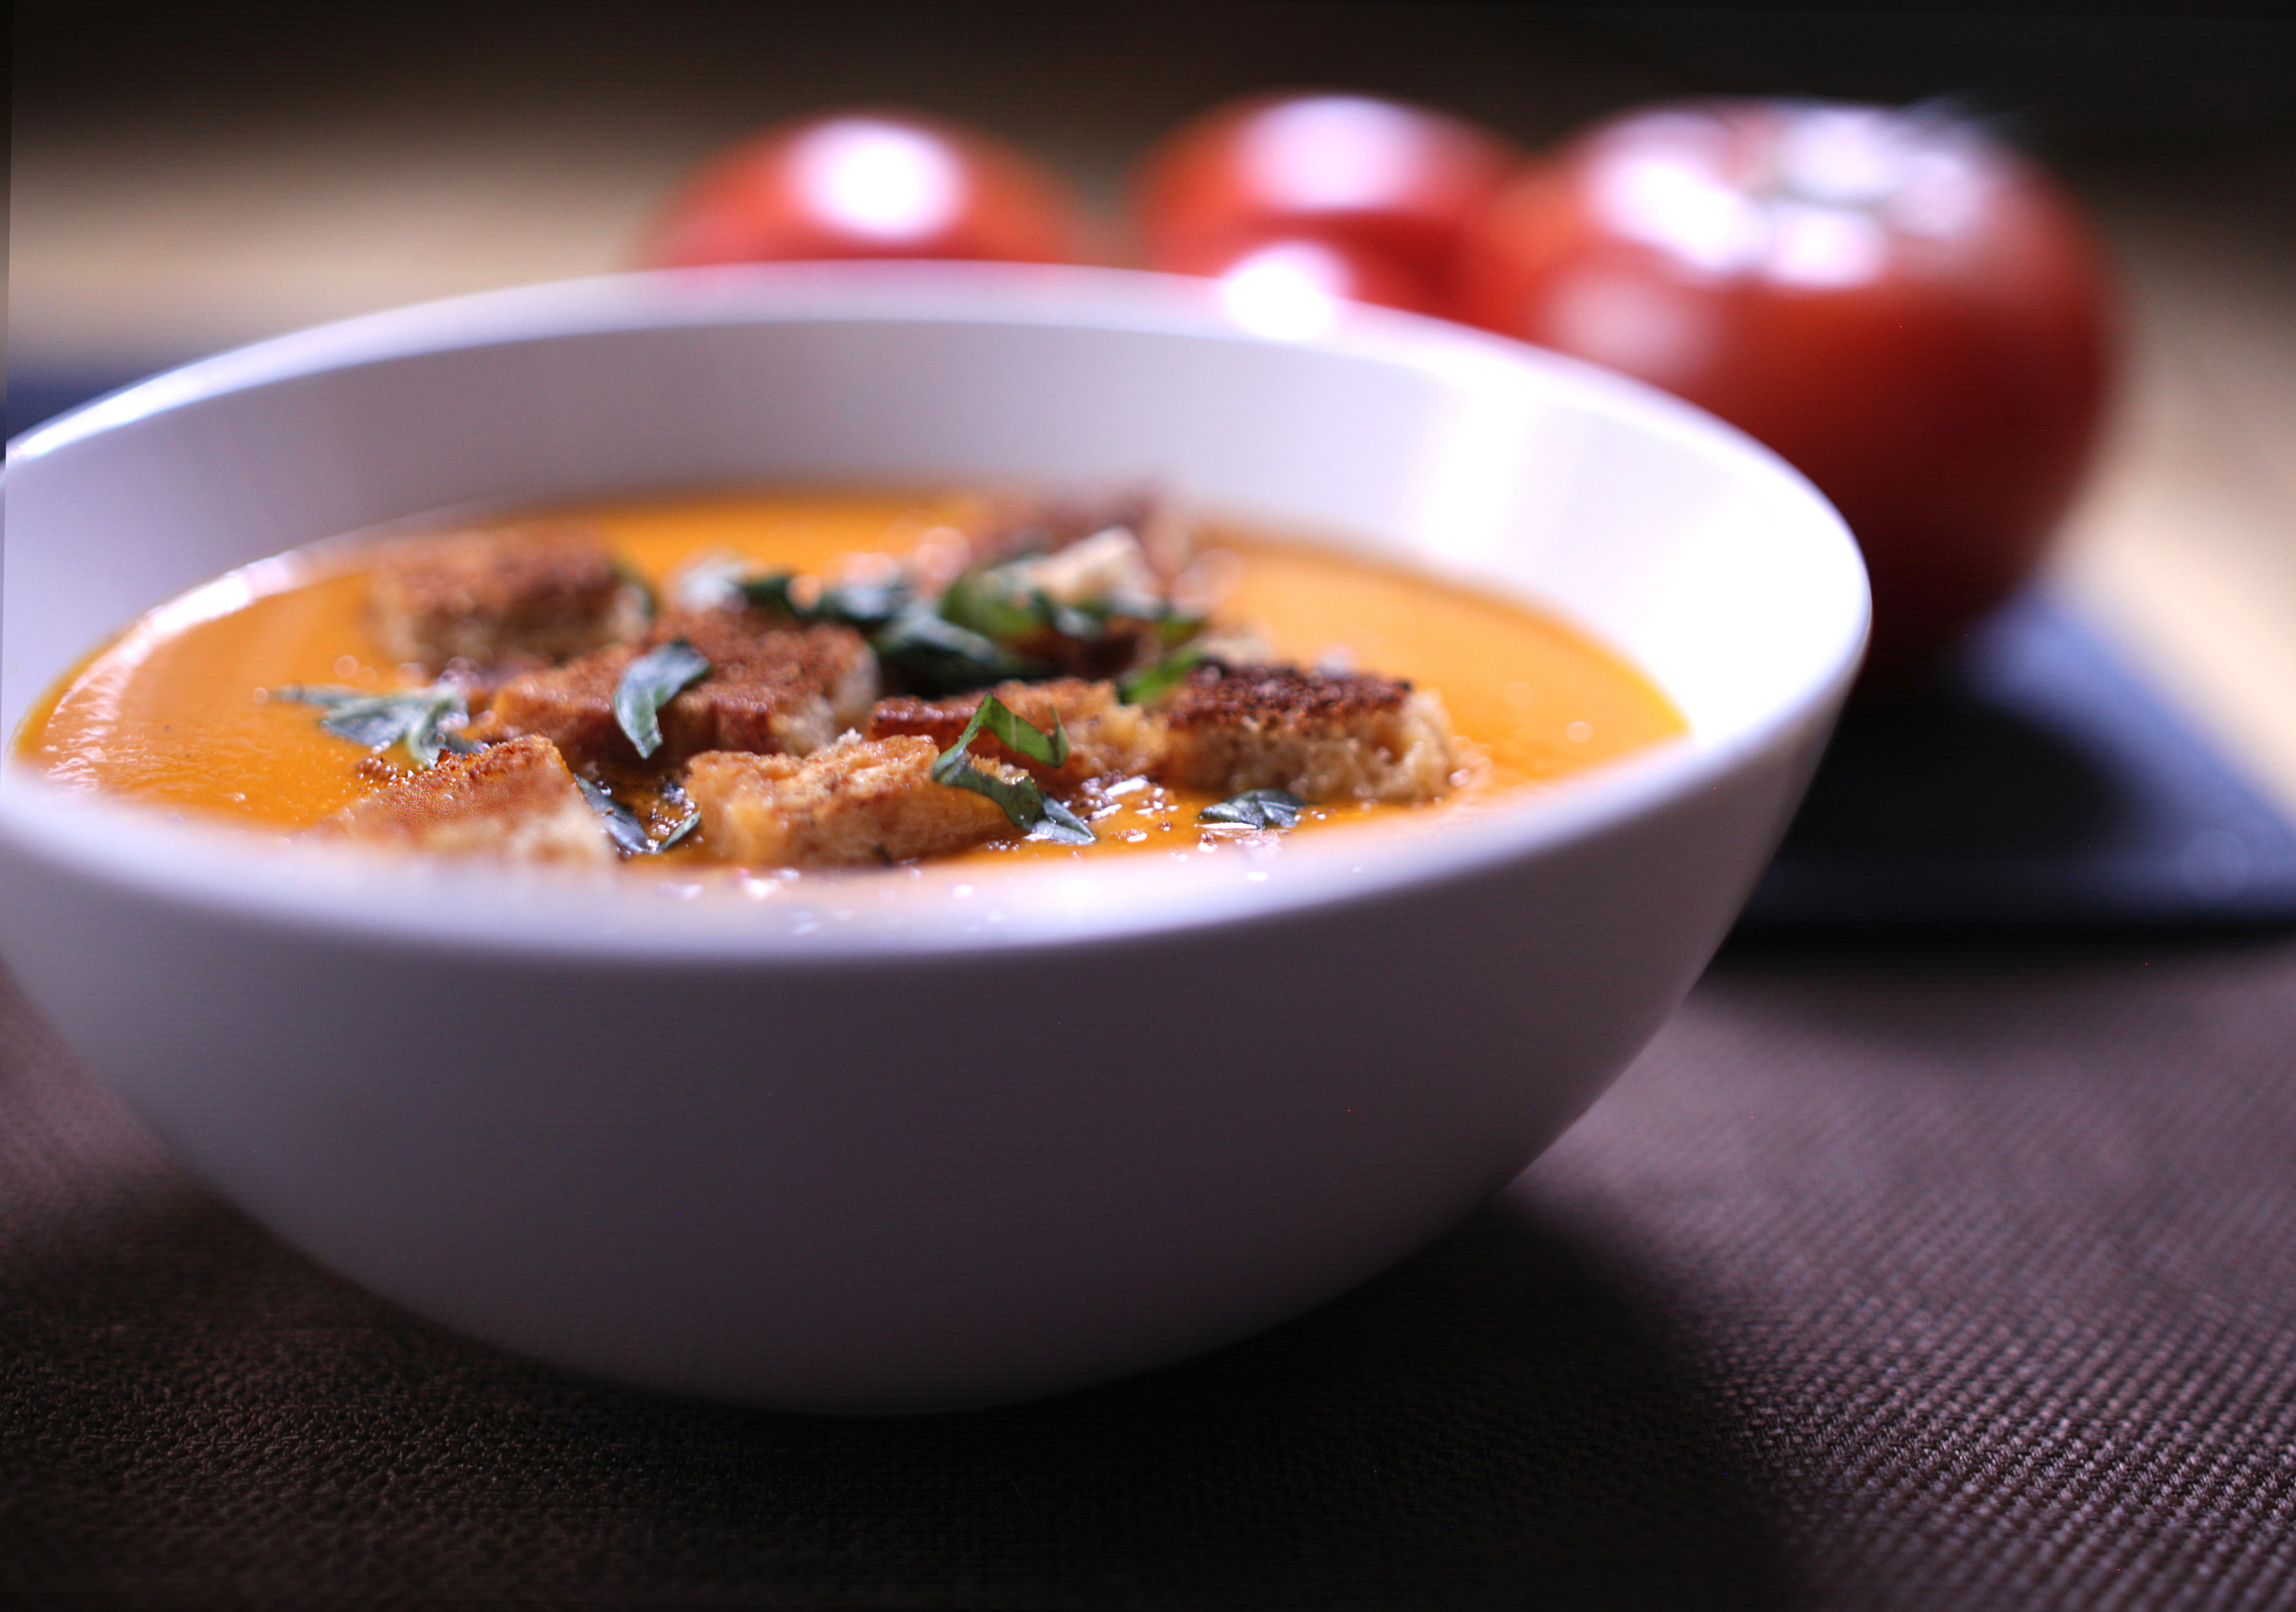 Cream of Tomato Soup with Homemade Croutons